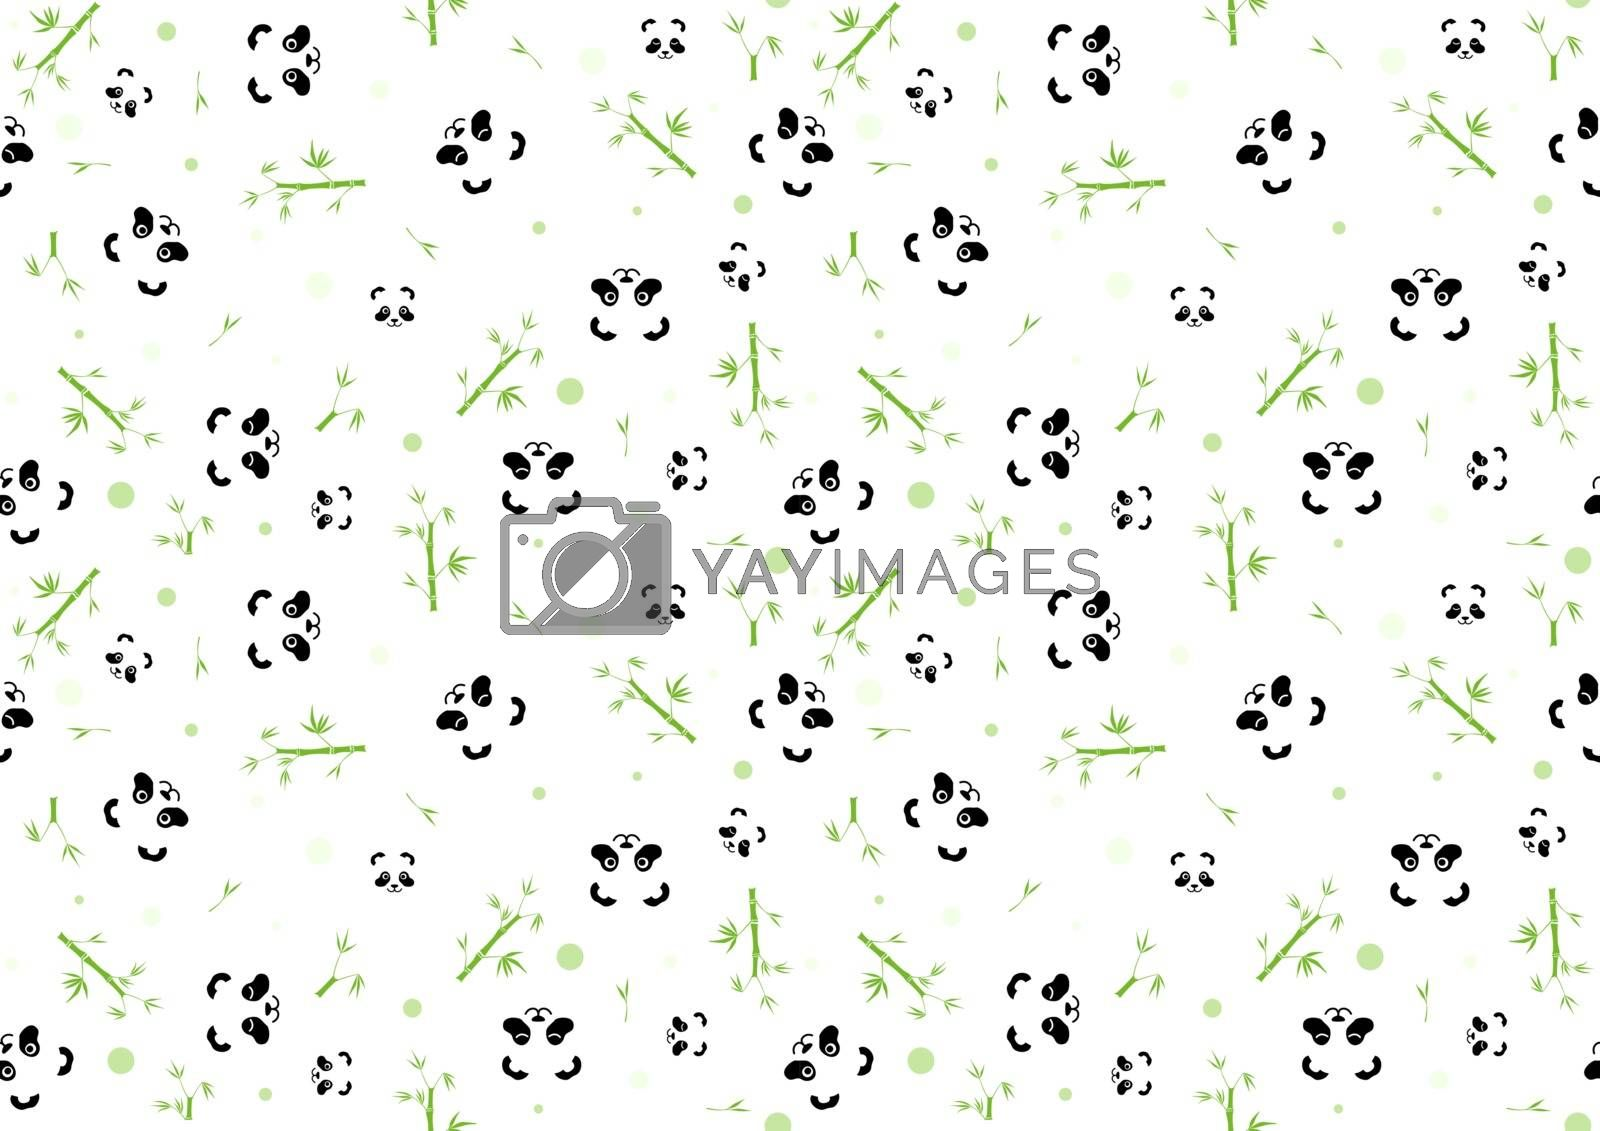 Seamless Baby Pattern with Panda Face and Green Bamboo Plants - Repetitive Print Texture Illustration, Vector